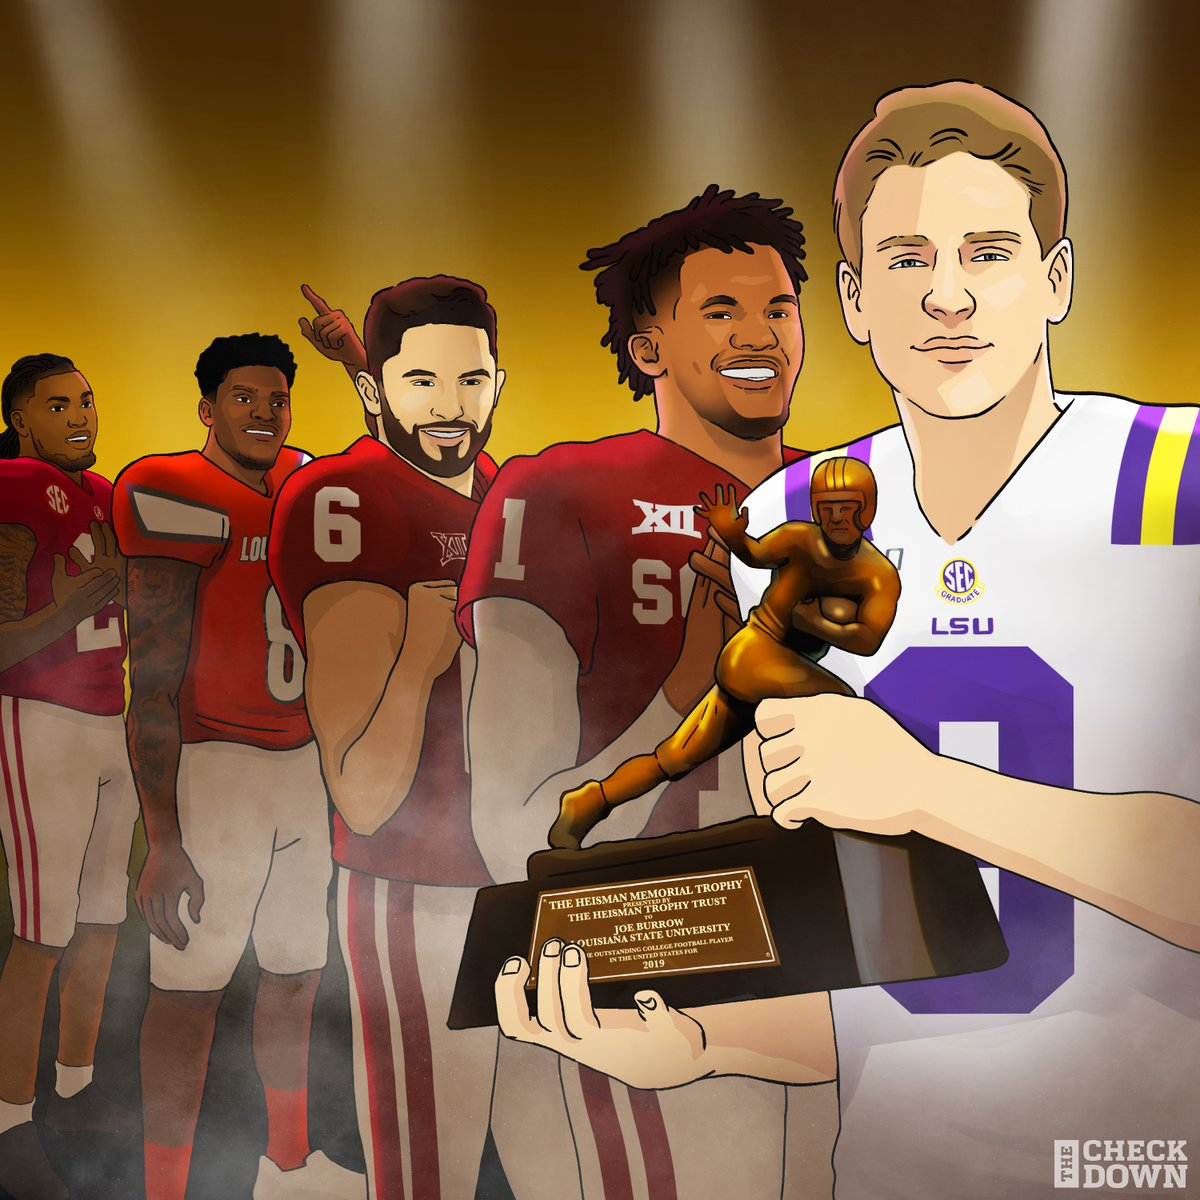 From backup to transfer to Heisman. Joe Burrow is just getting started 💯🔥